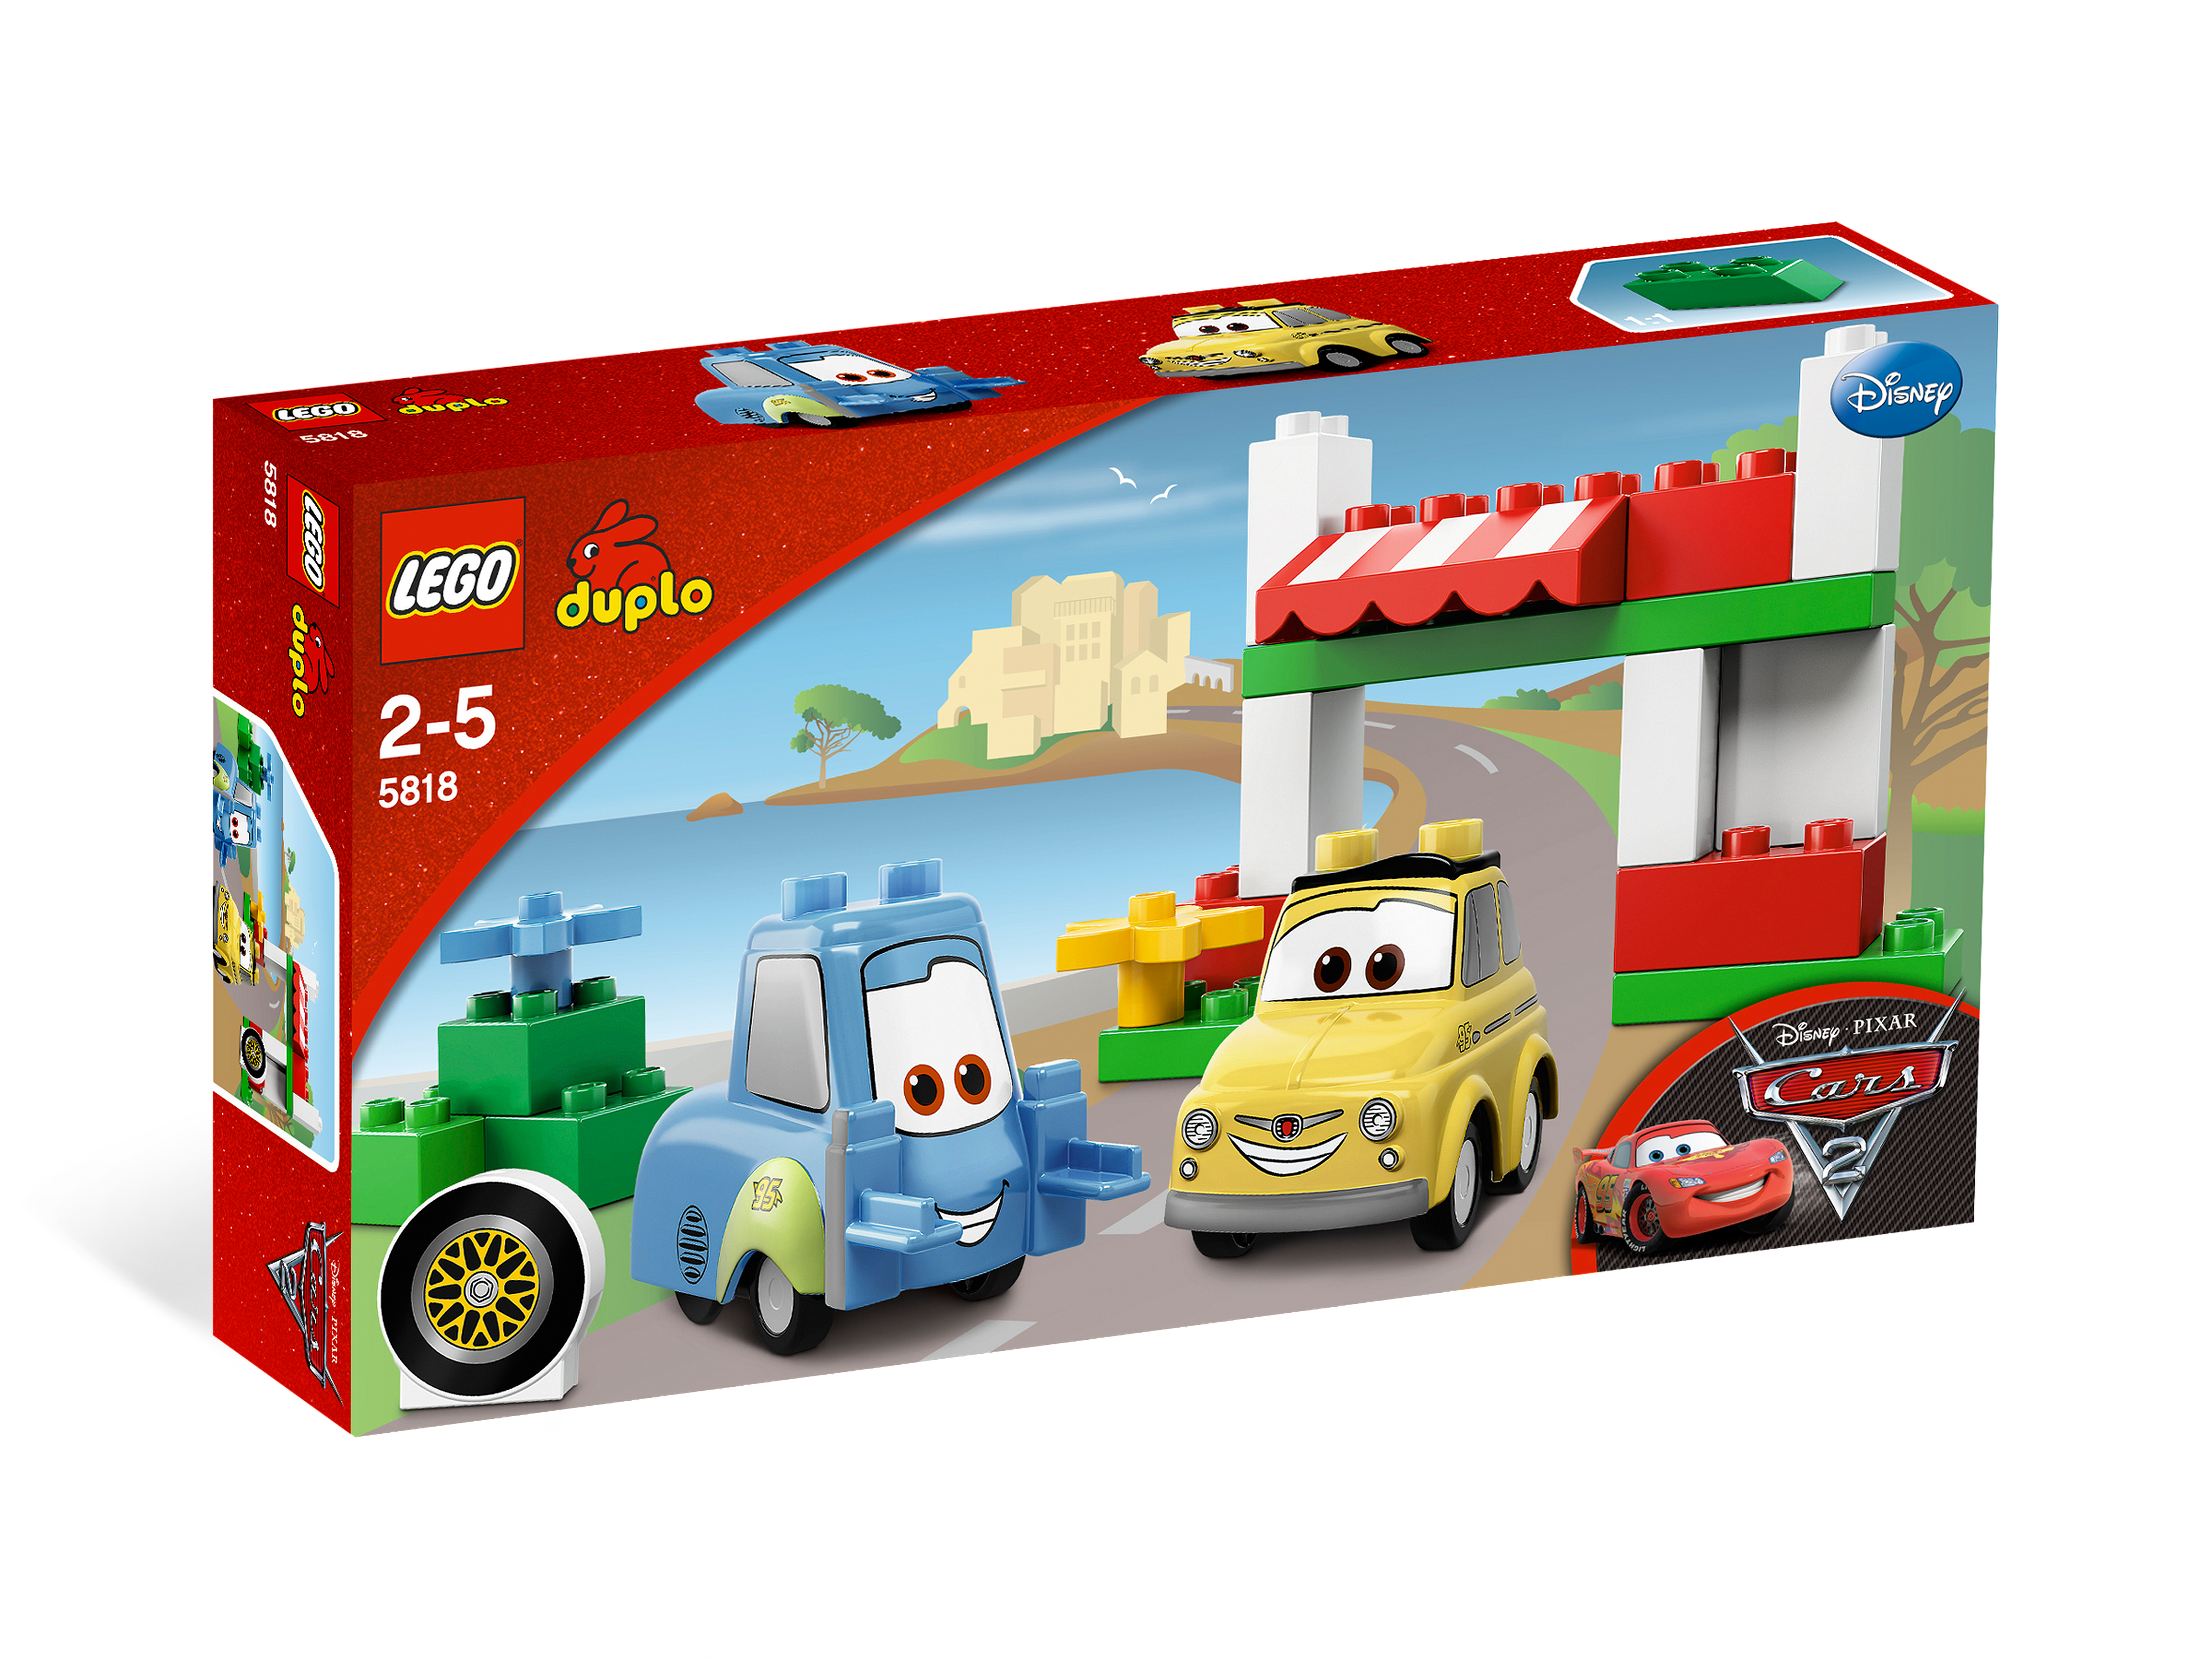 Lego Duplo Cars 2 Instructions User Guide Manual That Easy To Read